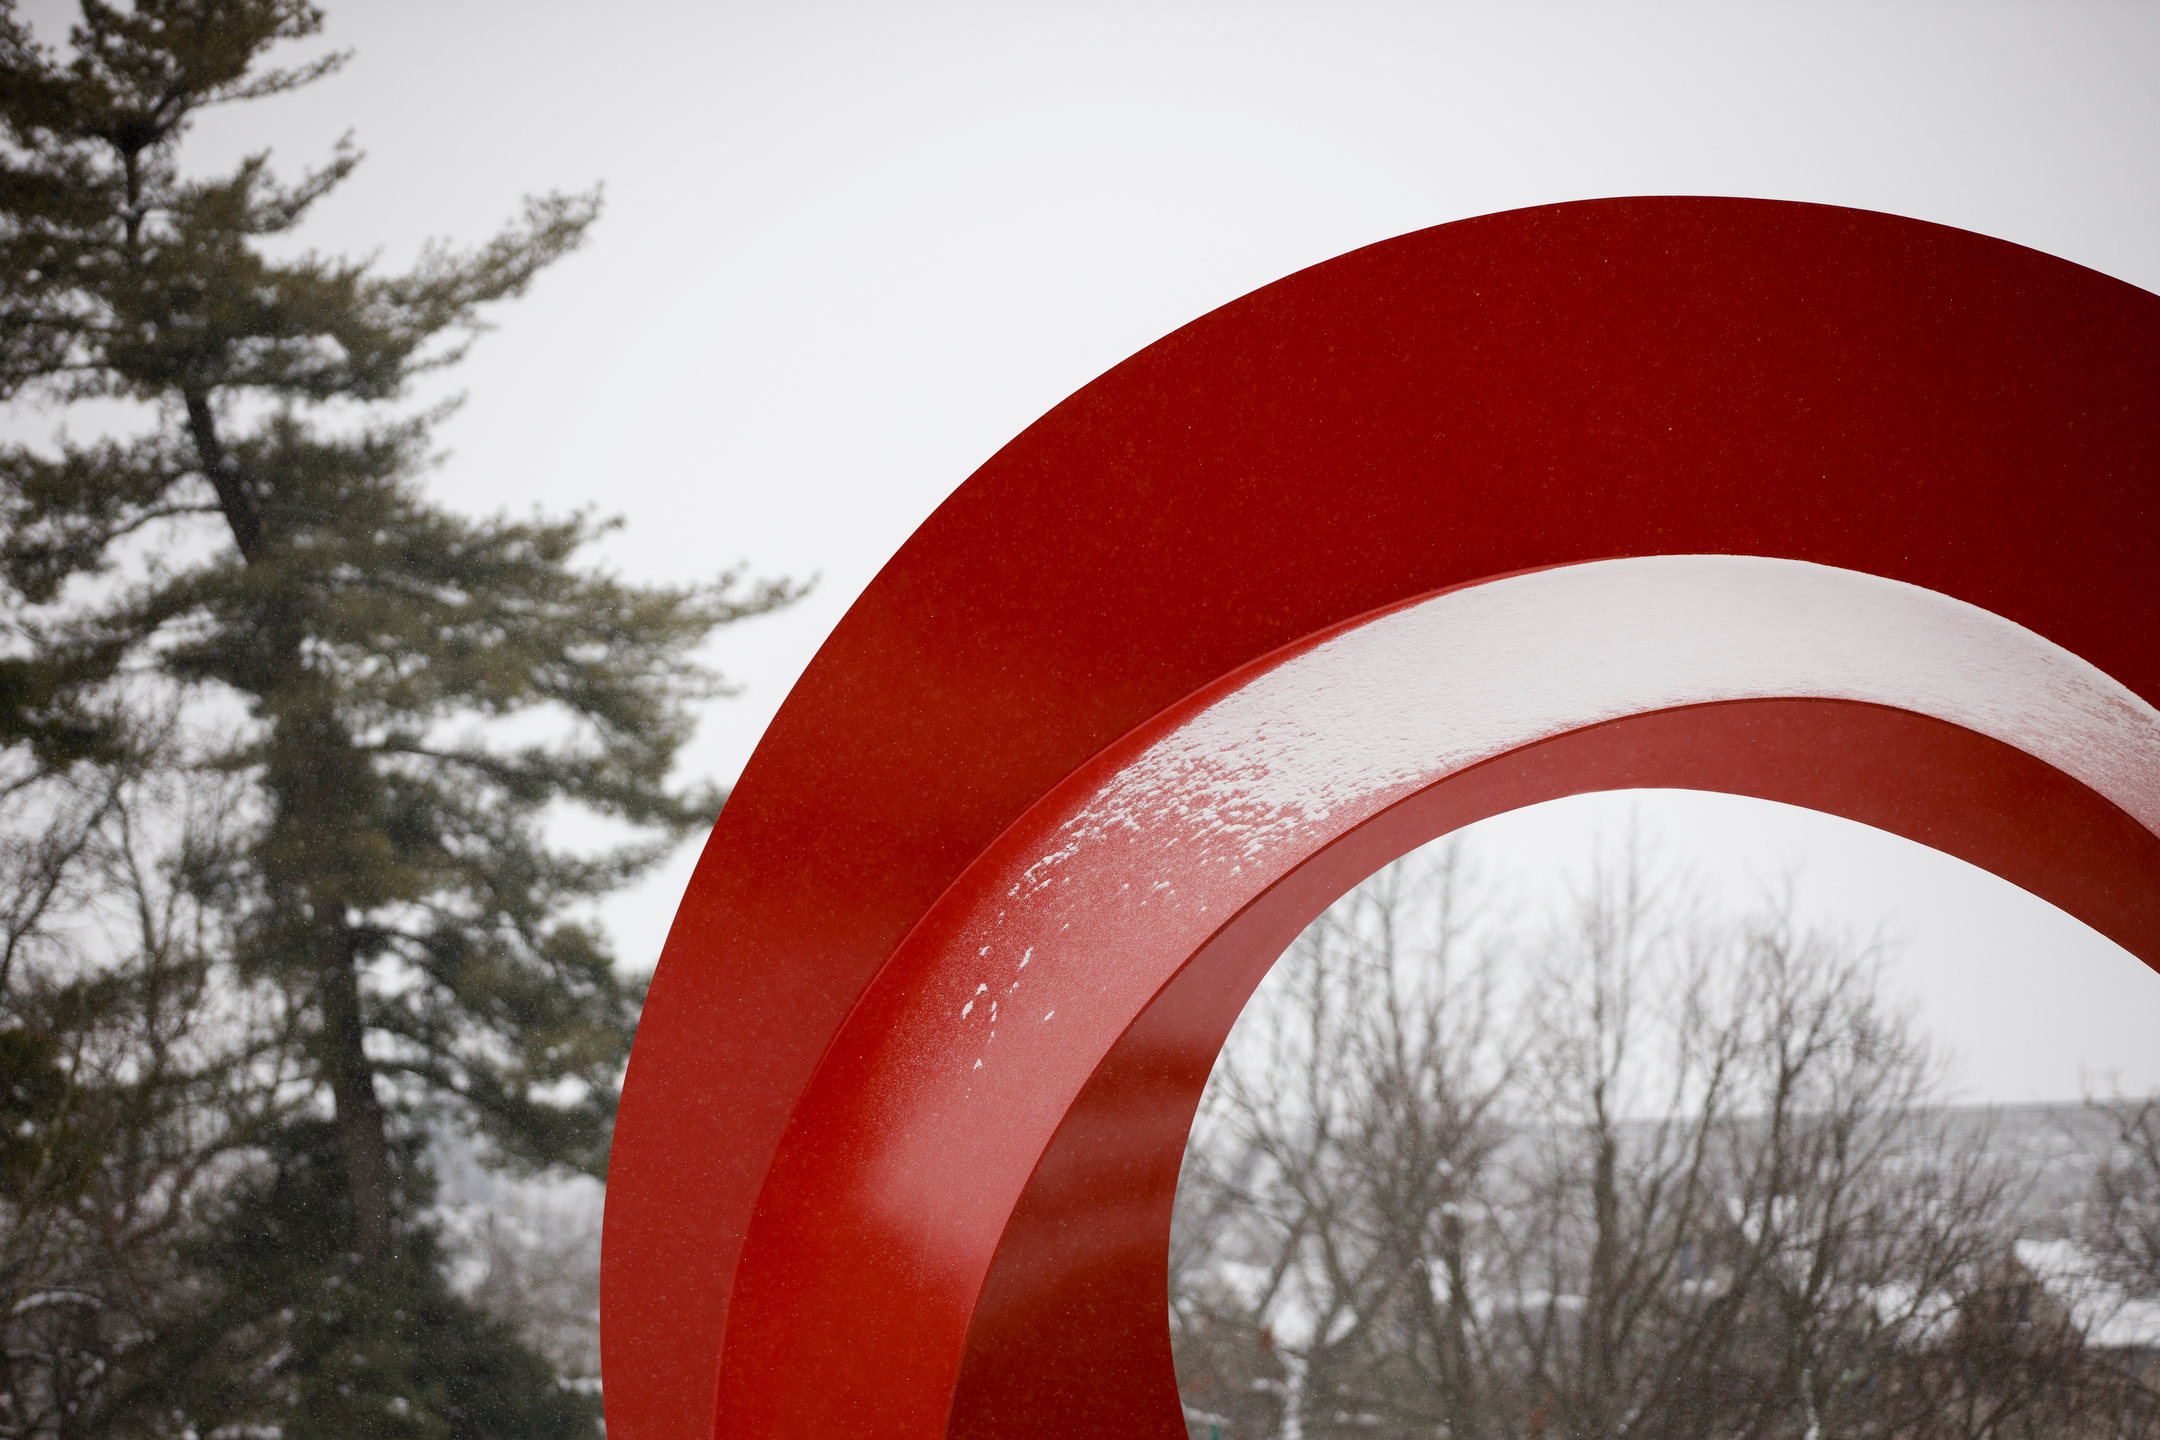 Snow clings to the Indiana Arc sculpture outside the Eskenazi Museum of Art on a winter day at Indiana University Bloomington on Wednesday, Feb. 10, 2021.